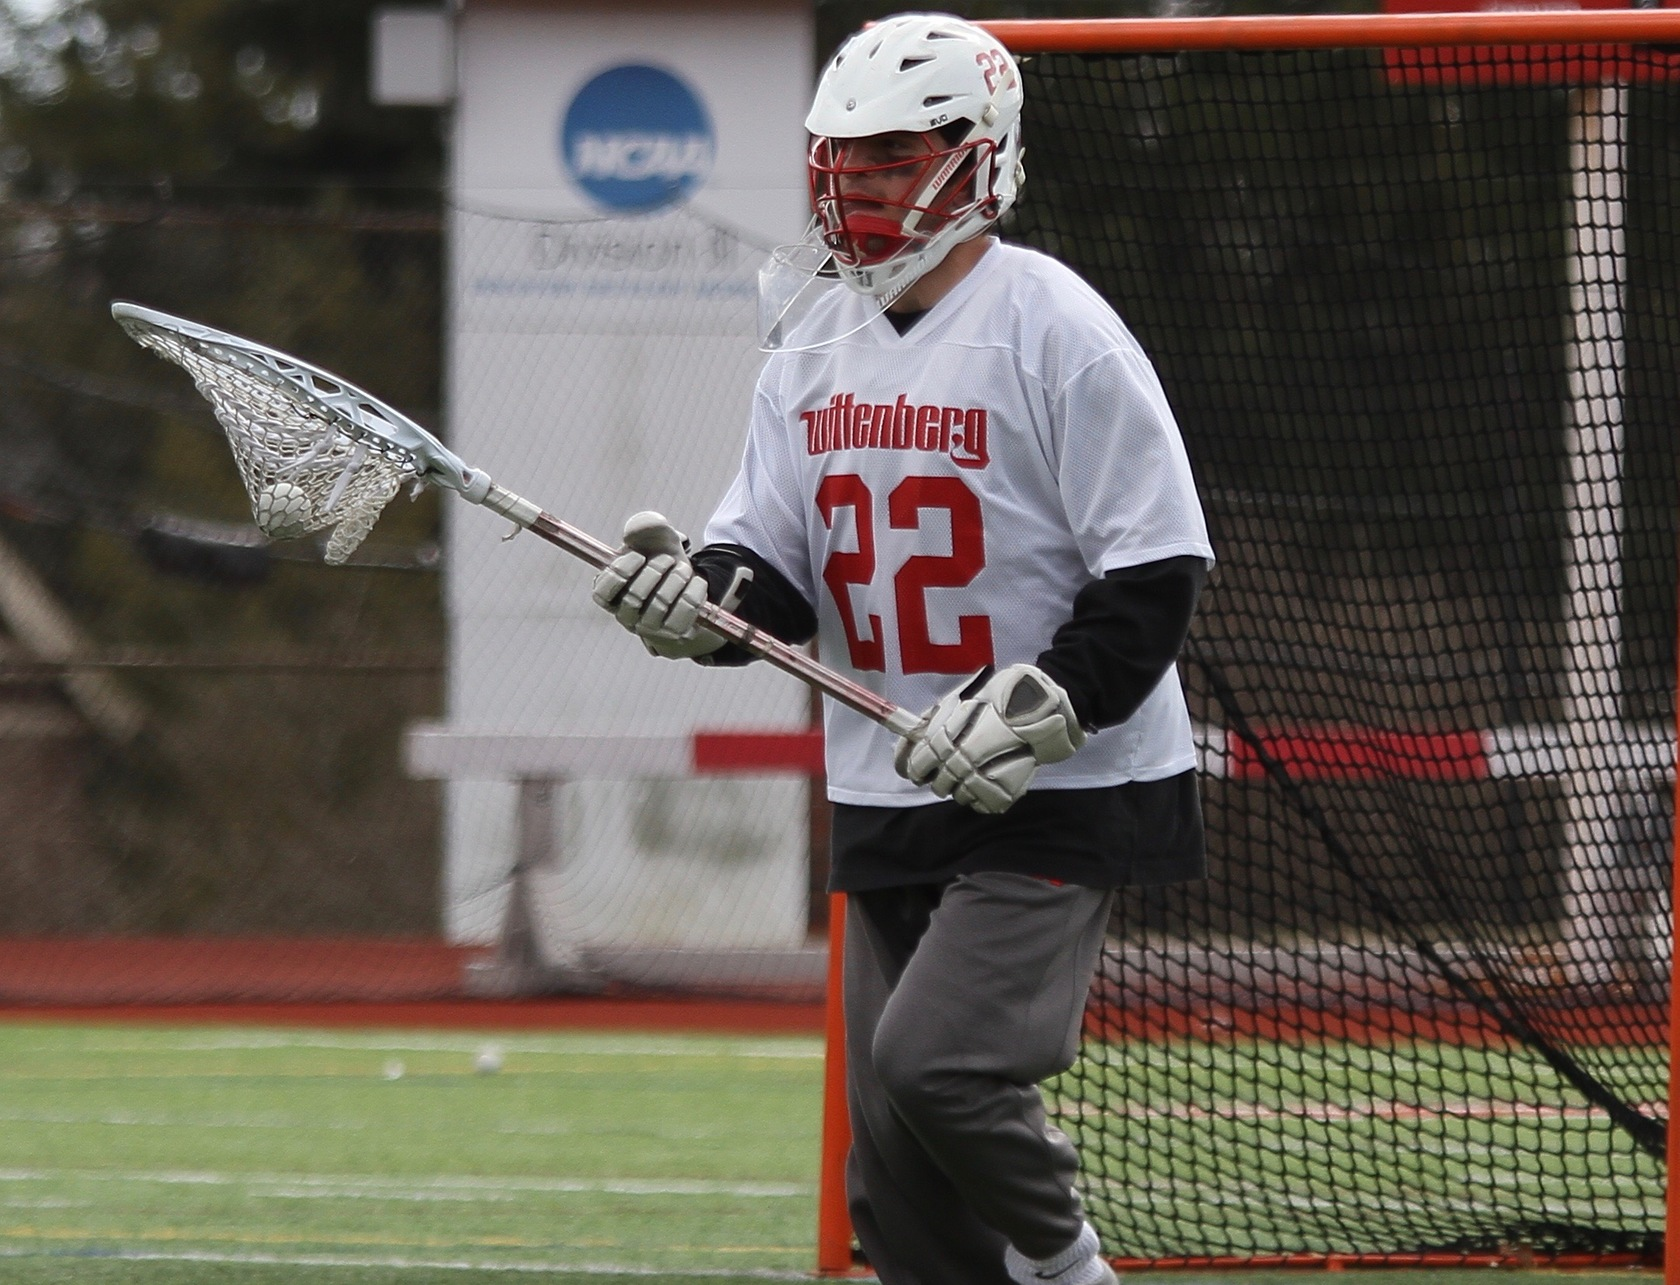 Sophomore Max Cavellier made 10 saves in Wittenberg's heartbreaking 11-10 loss against DePauw